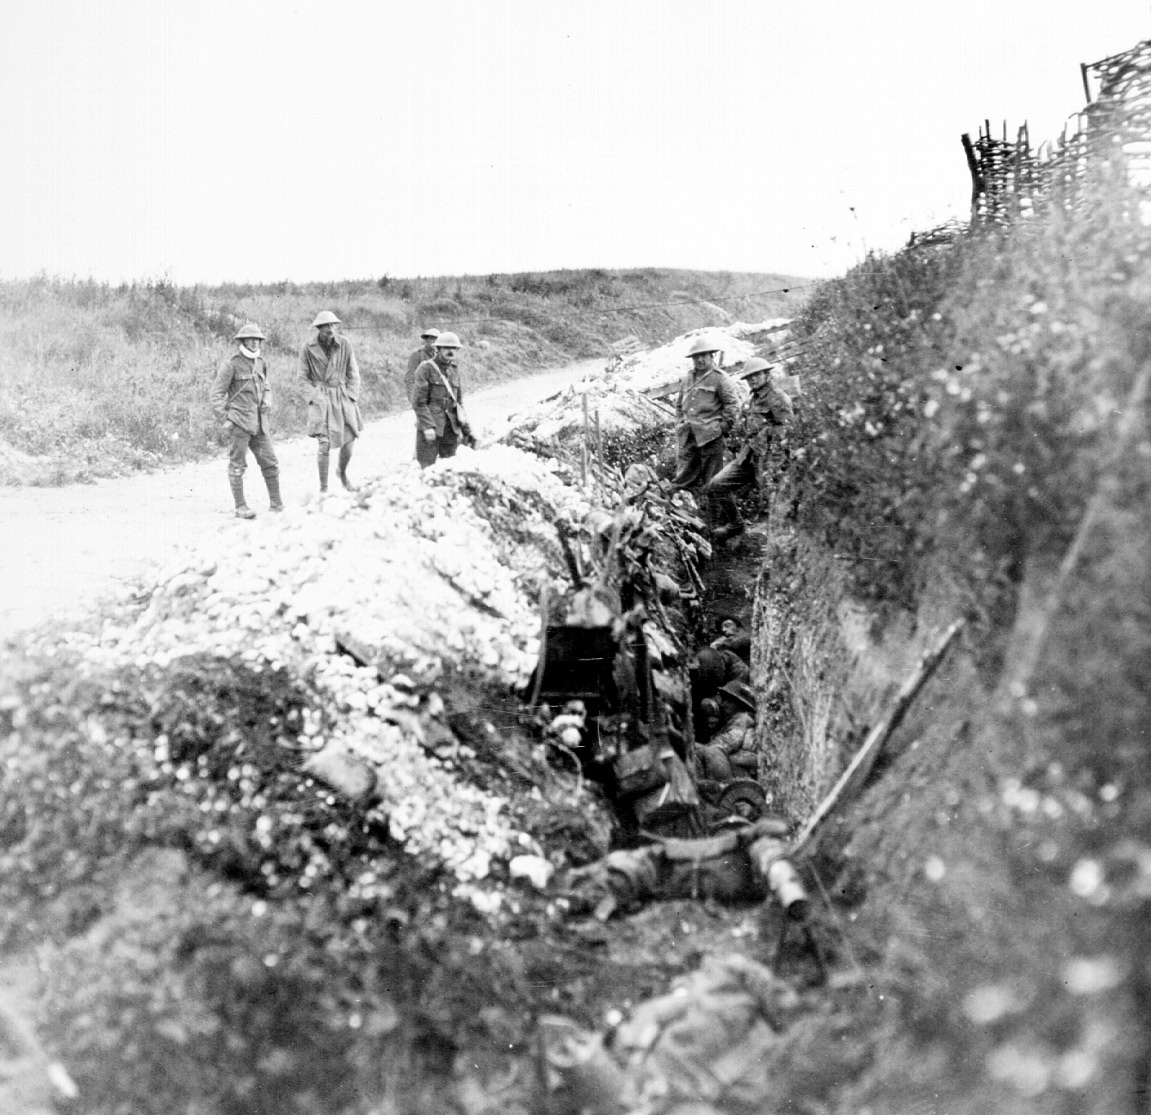 Newfoundland soldiers in St. John's Road support trench on July 1, 1916. Courtesy of The Rooms Provincial Archives Division (NA 3105), St. John's, NL